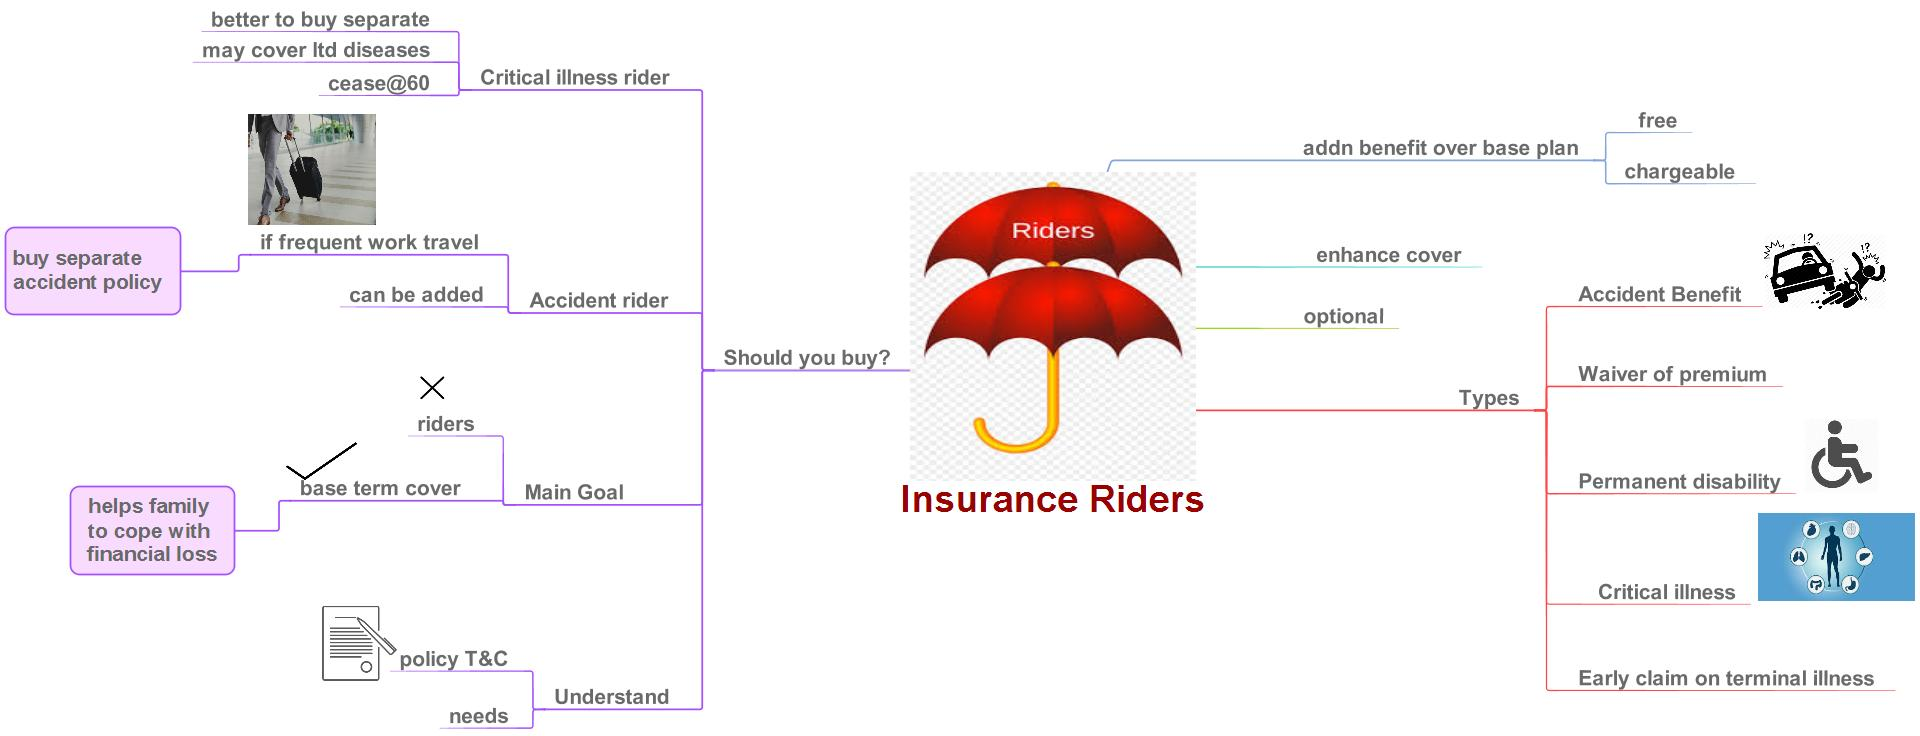 Should you buy riders with Term Life Insurance?